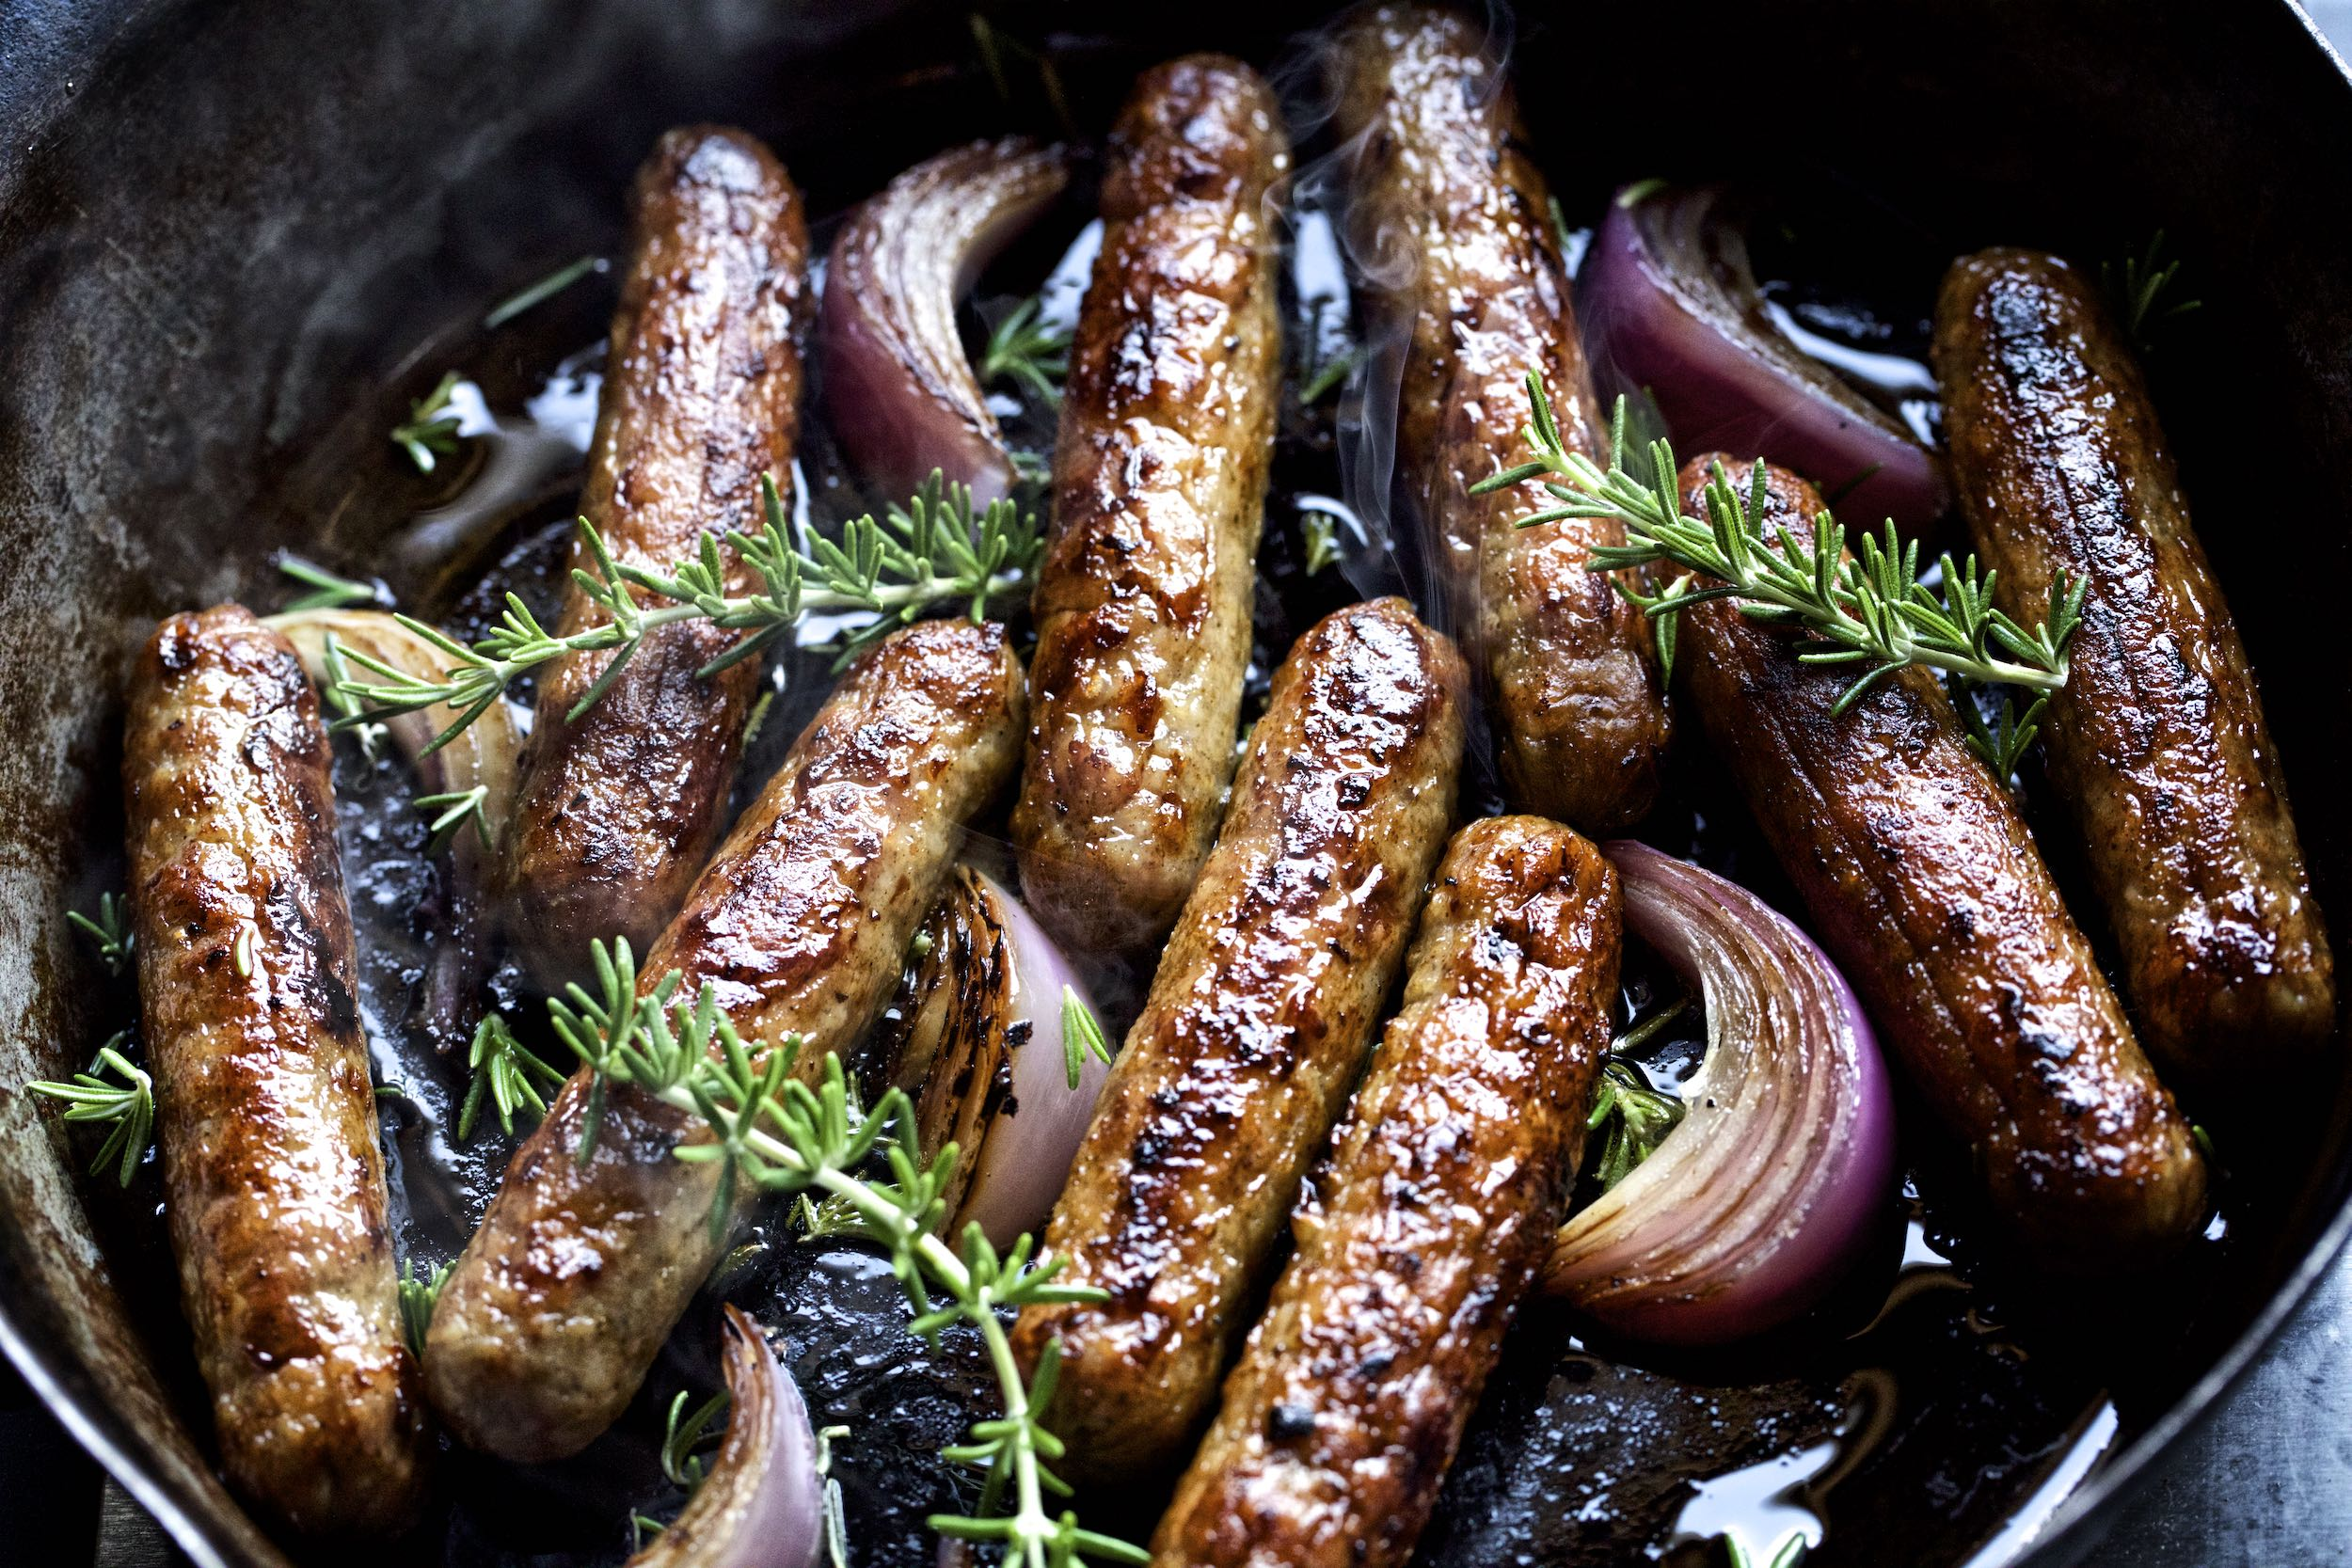 Jody Horton Photography - Sausage links cooking with onions and rosemary in rustic skillet.